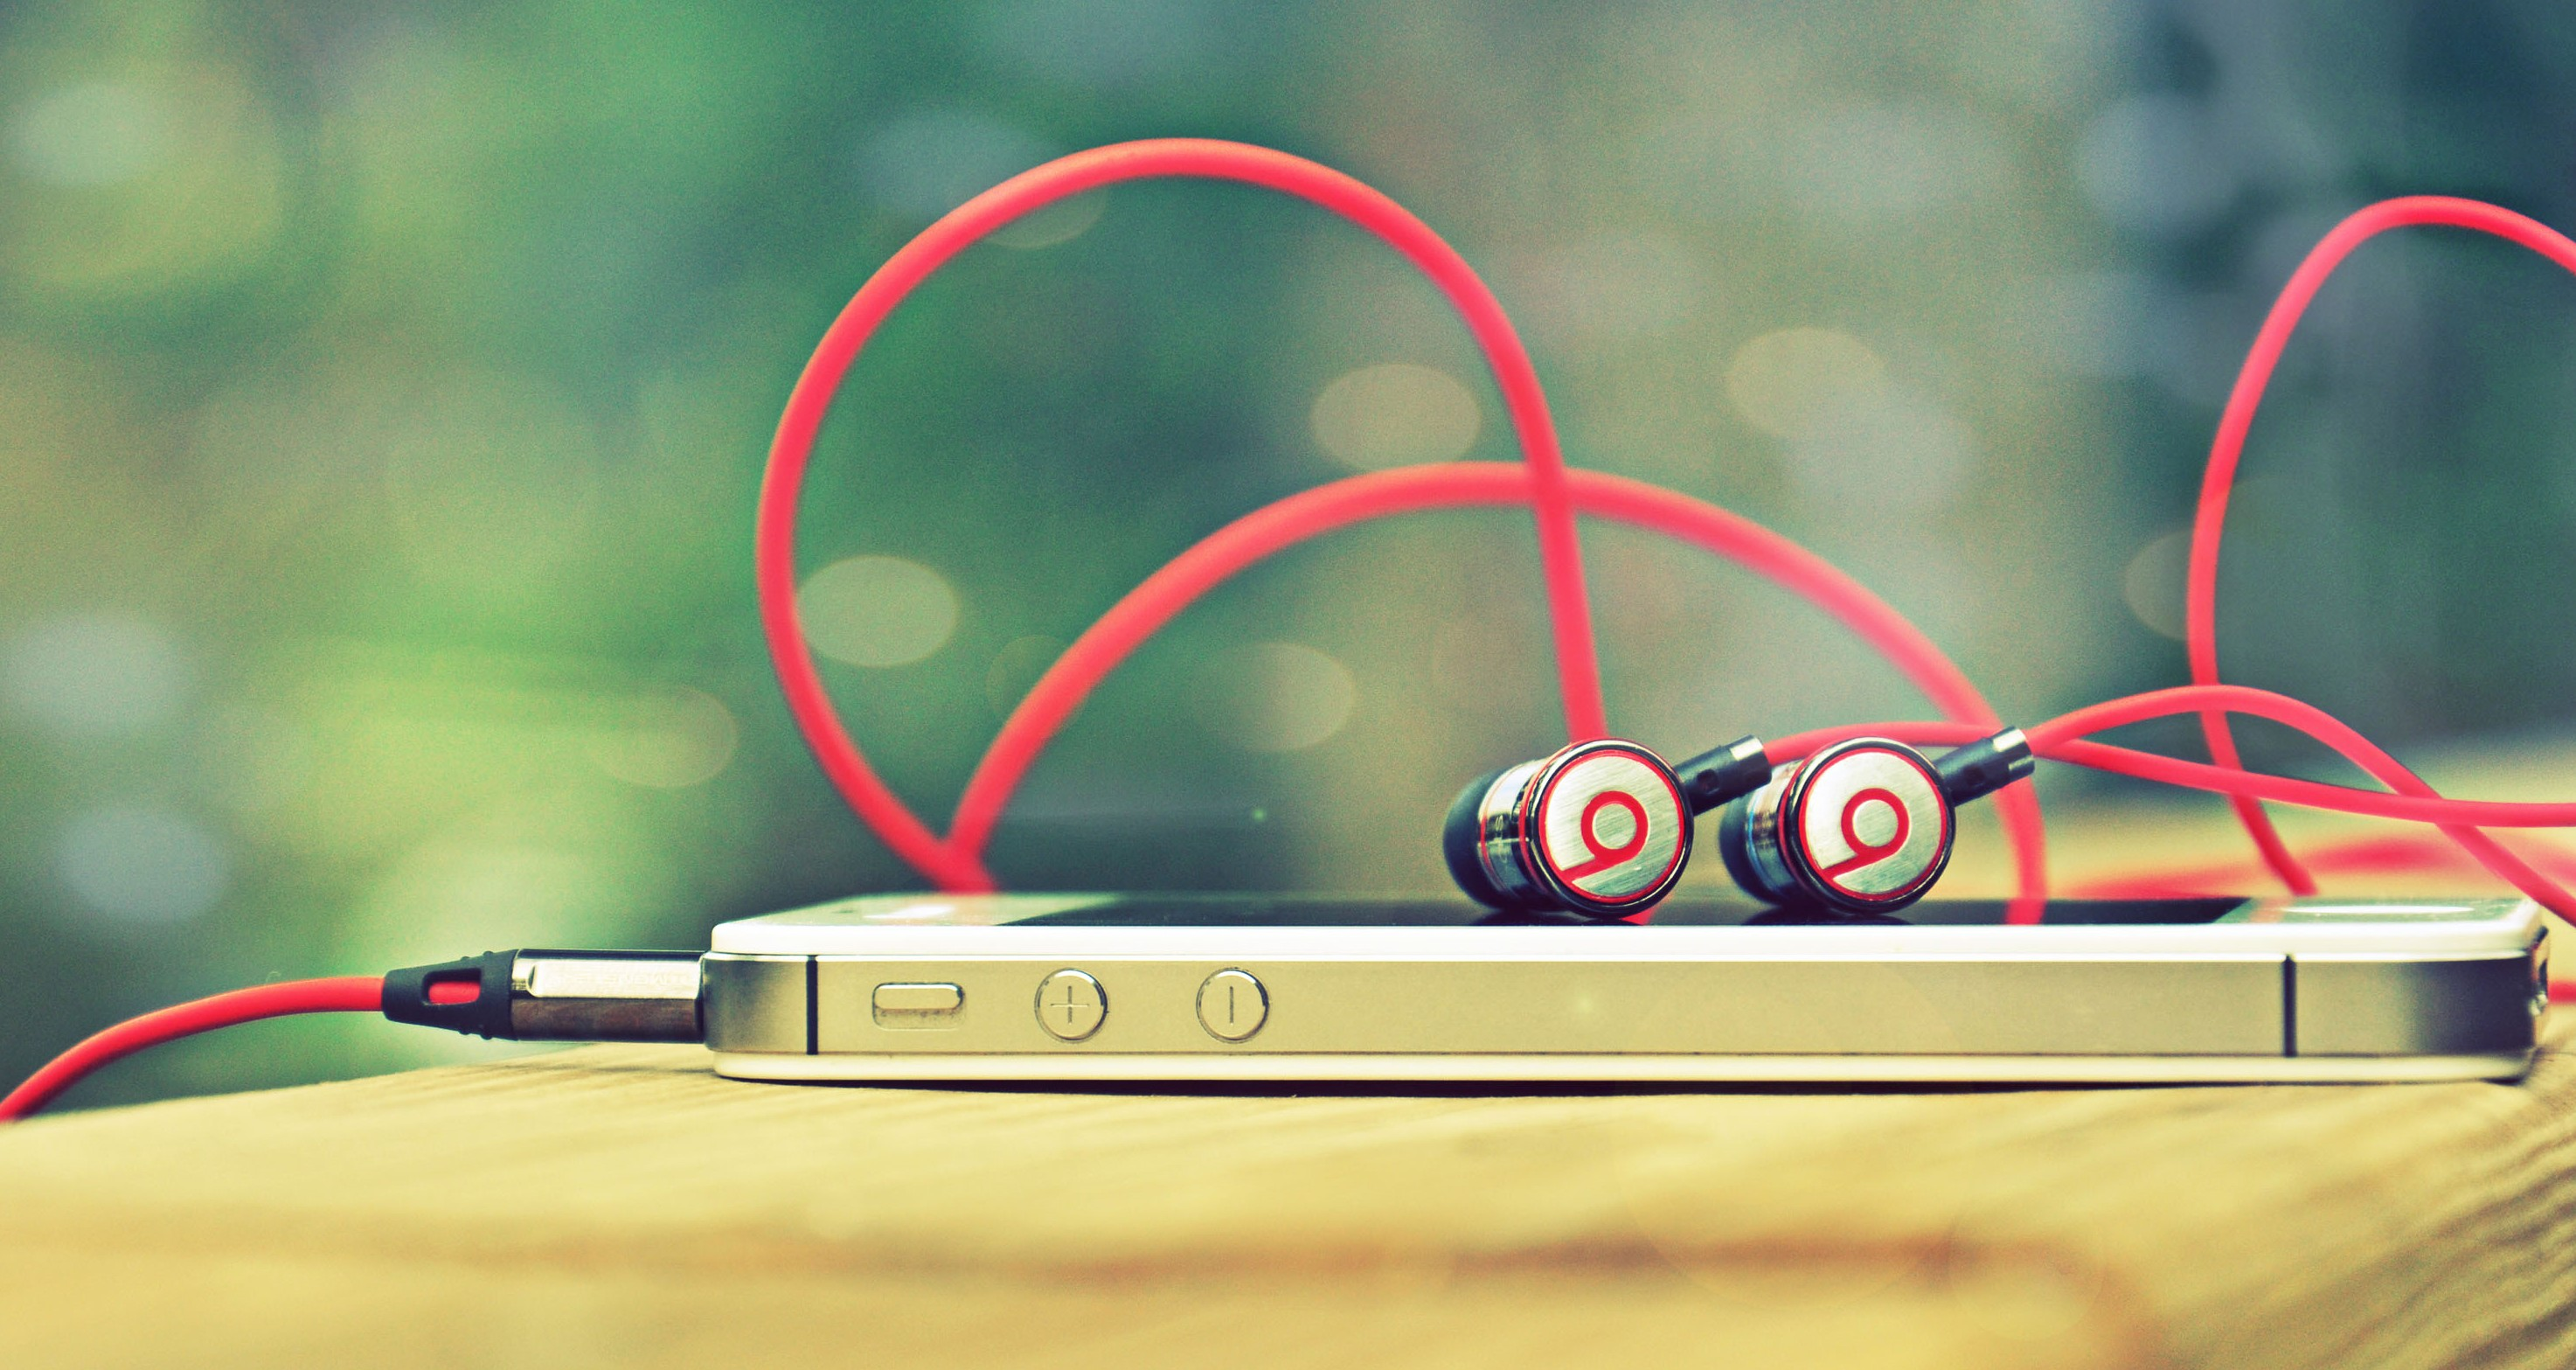 I-Phone-4-Apple-Headphones-Beats-By-Dr-Dre